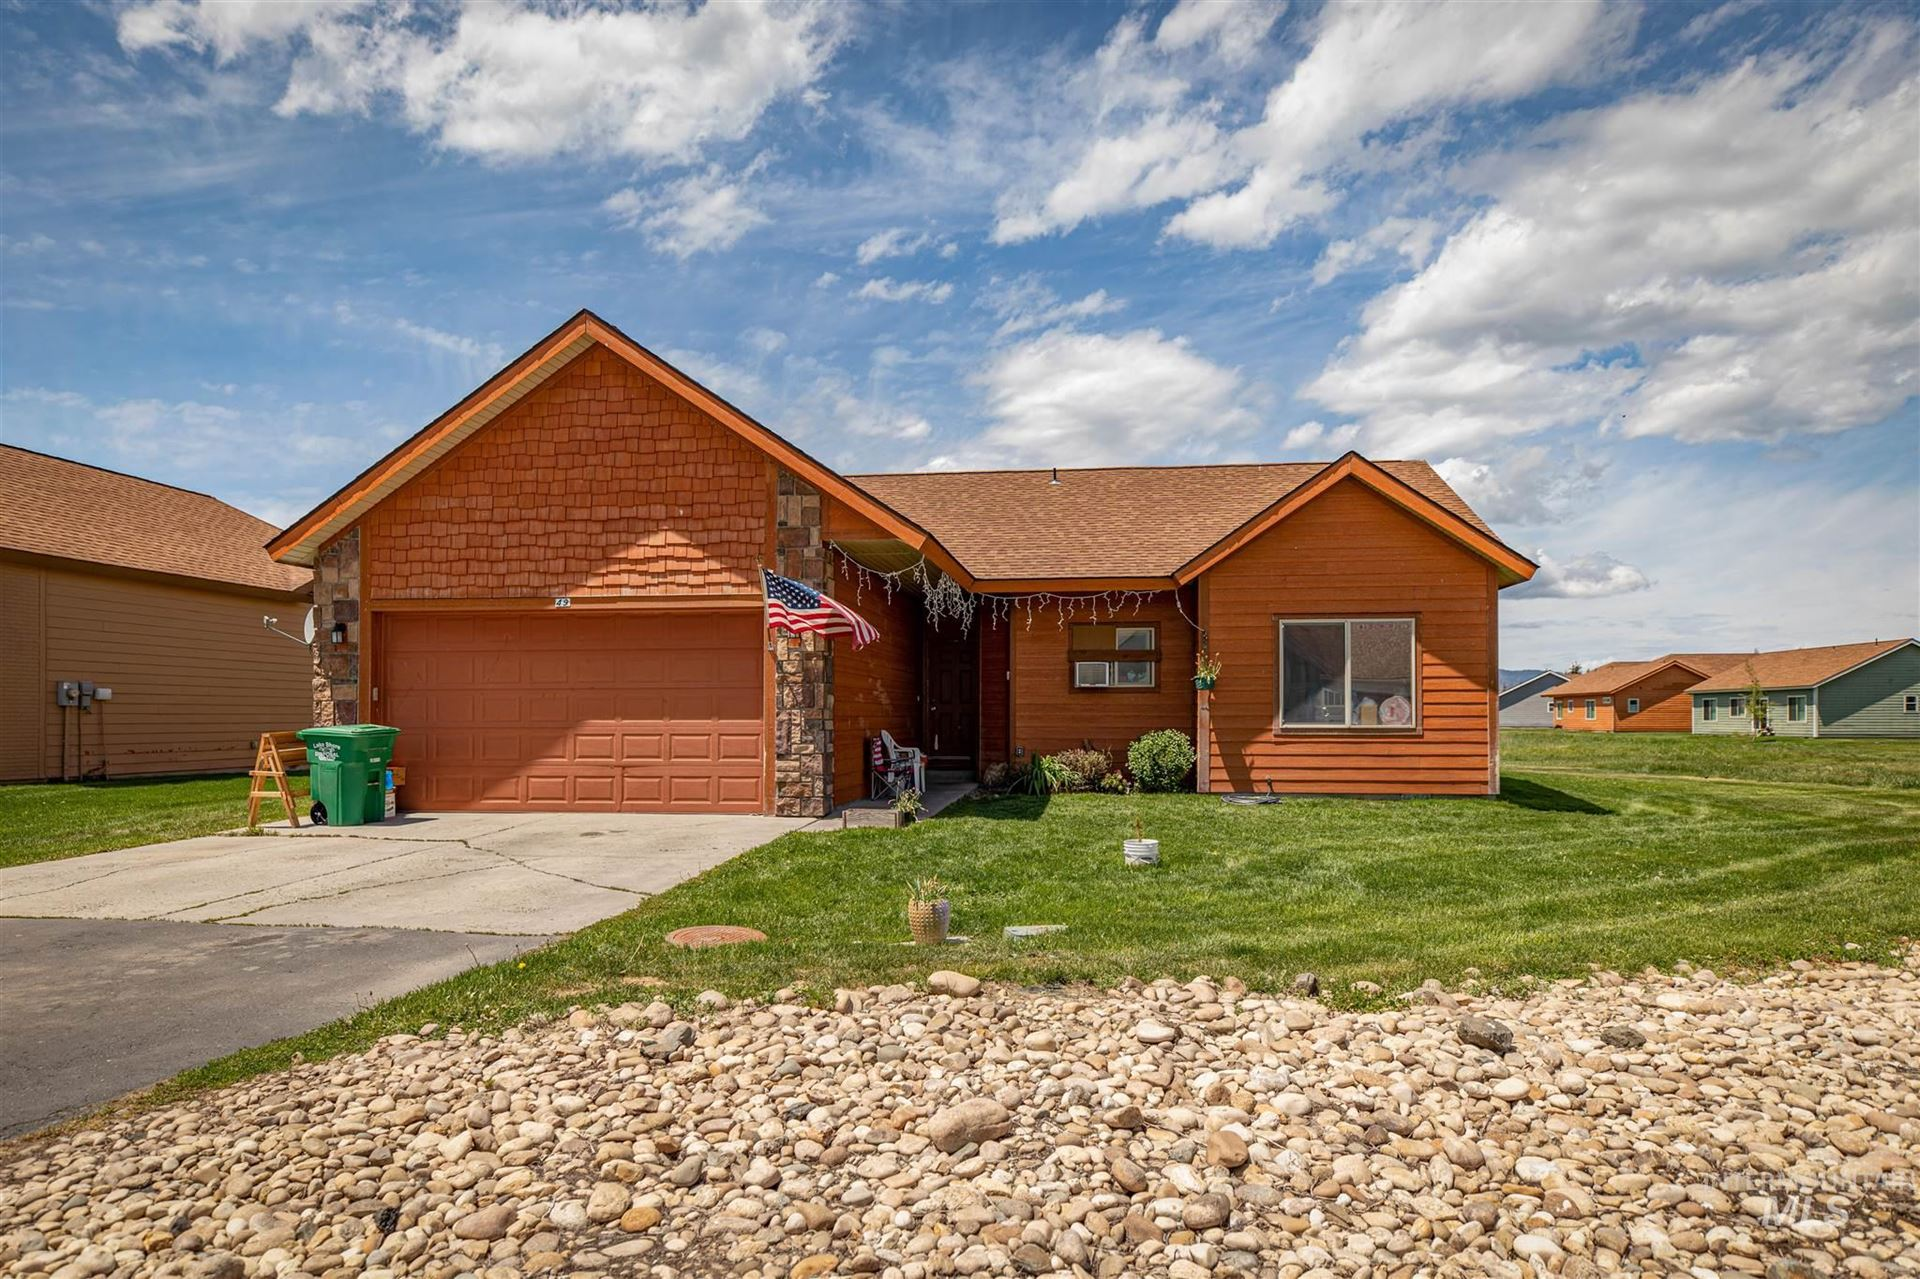 Photo of 39 Moore Rd, Donnelly, ID 83615 (MLS # 98806656)